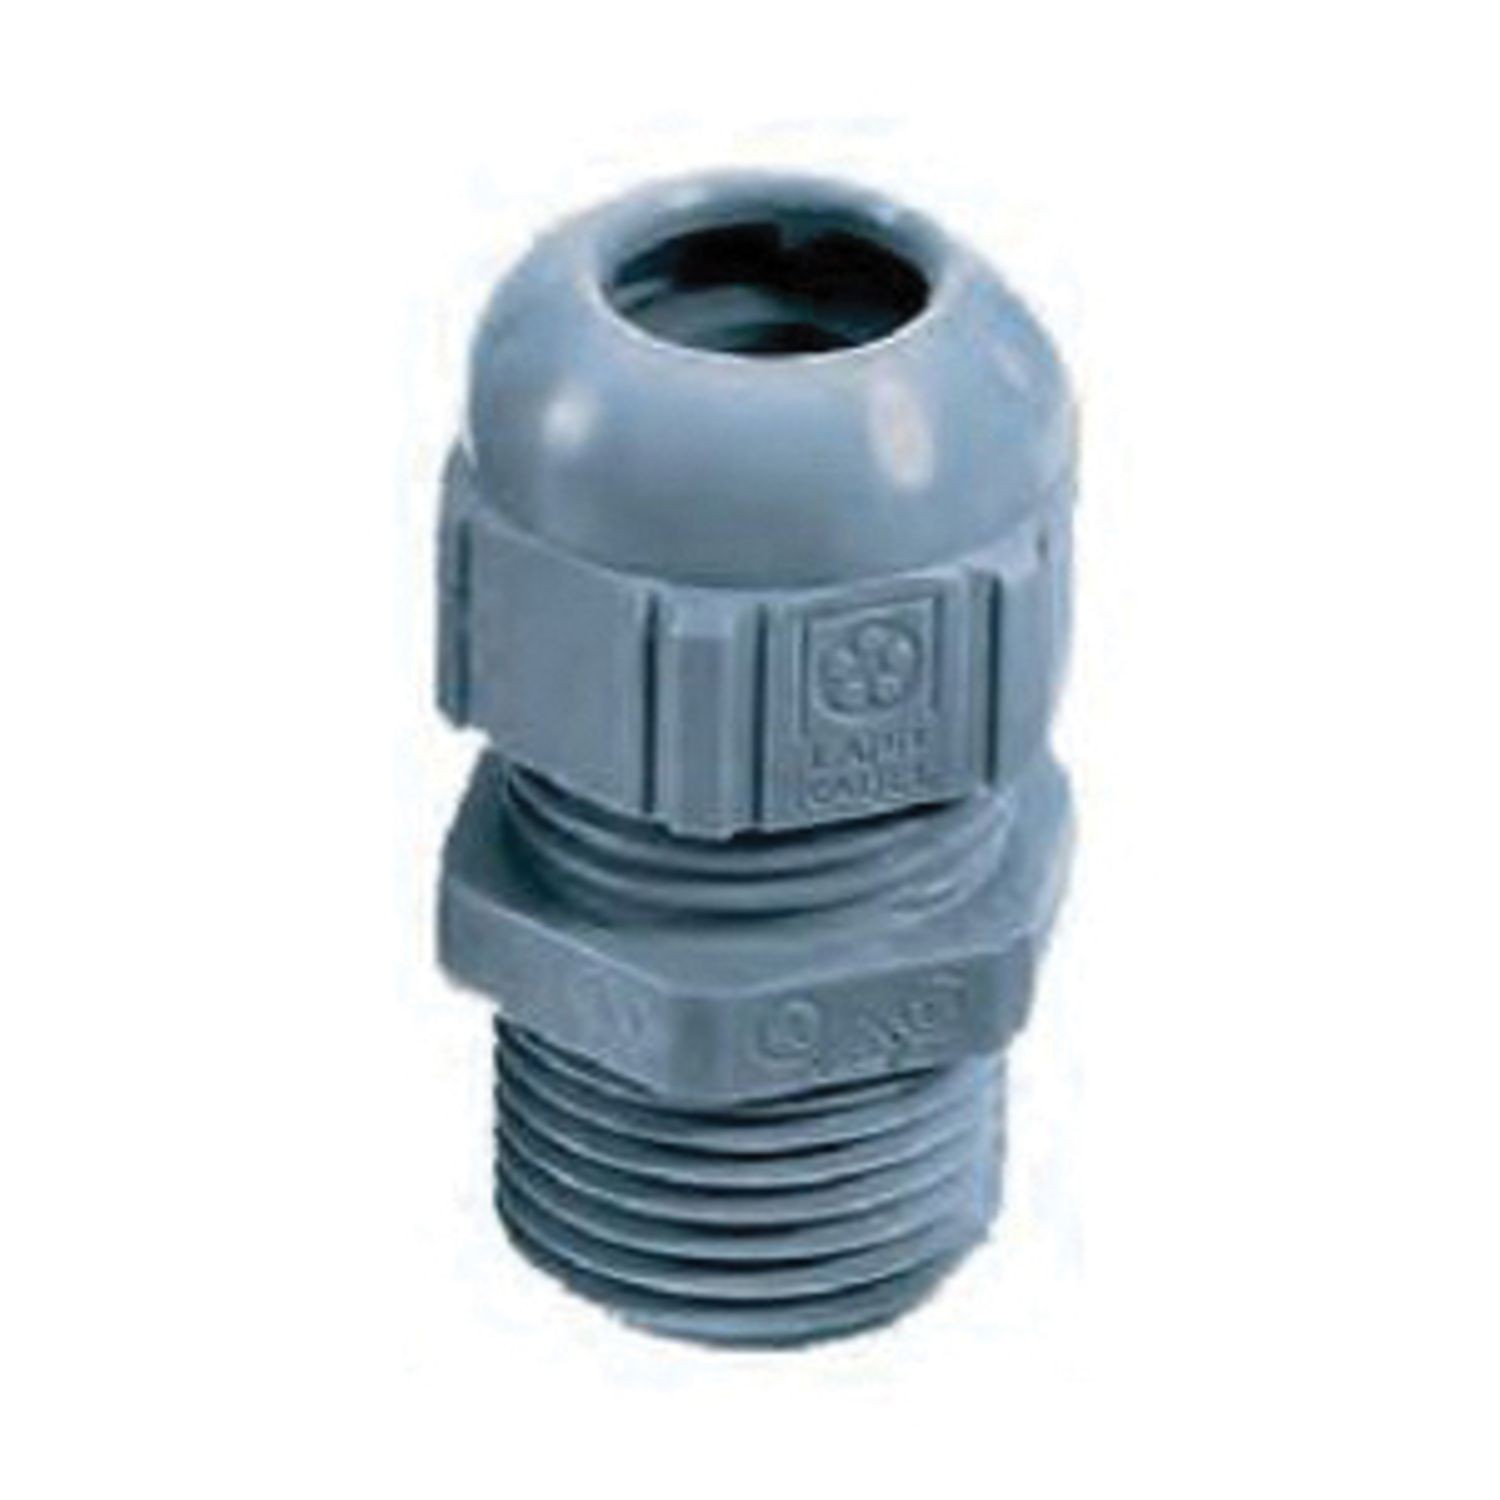 OLFLEX® SKINTOP® SLRN Reducer Bushing Strain Relief Cable Gland With ...